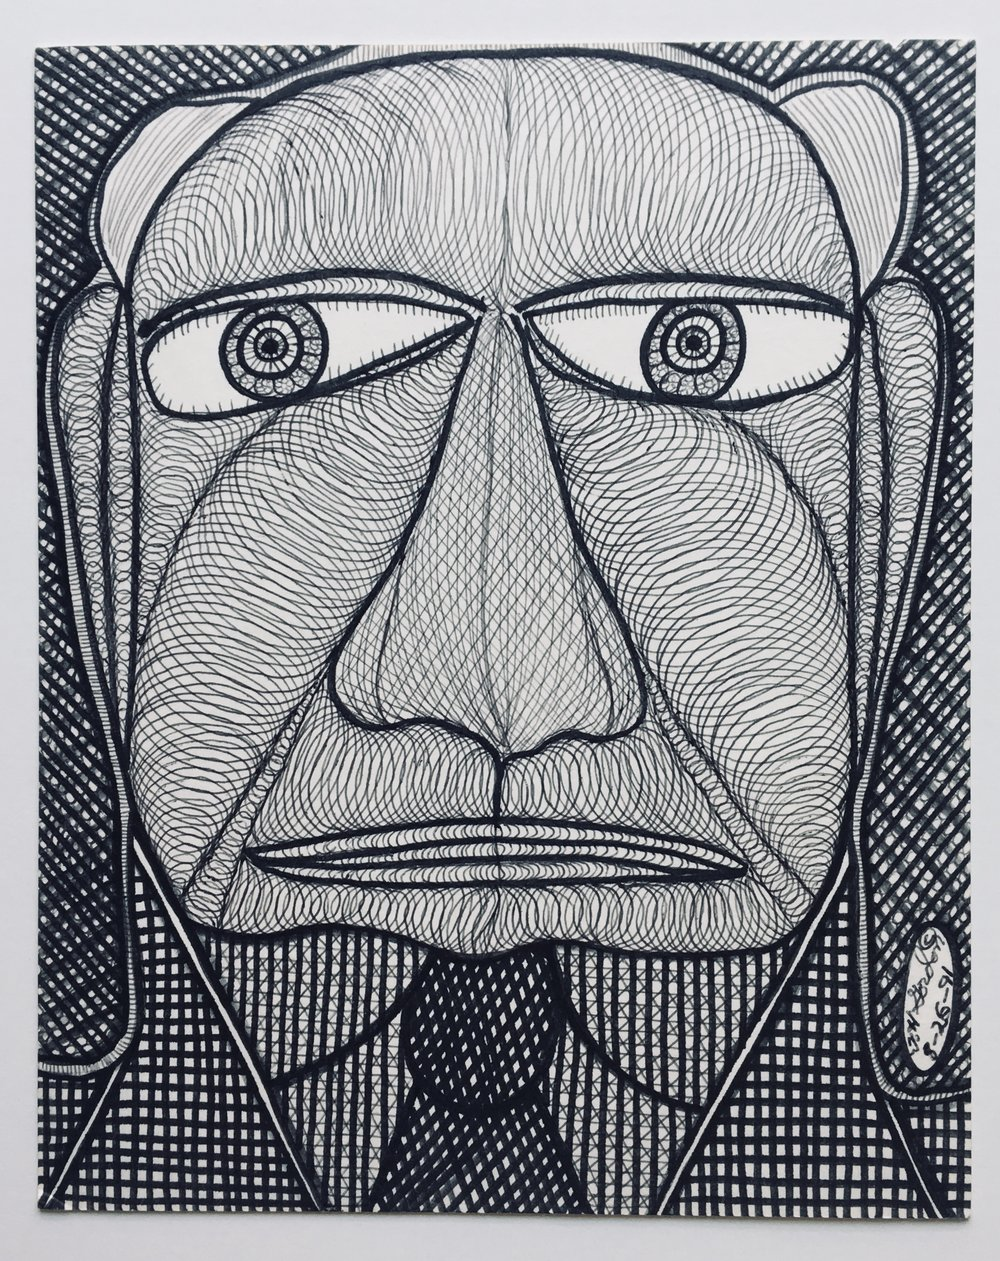 GalleryOonH-Ted Gordon-Founder of the Firm-1991-Pen and marker on posterboard-8x10-850.jpg